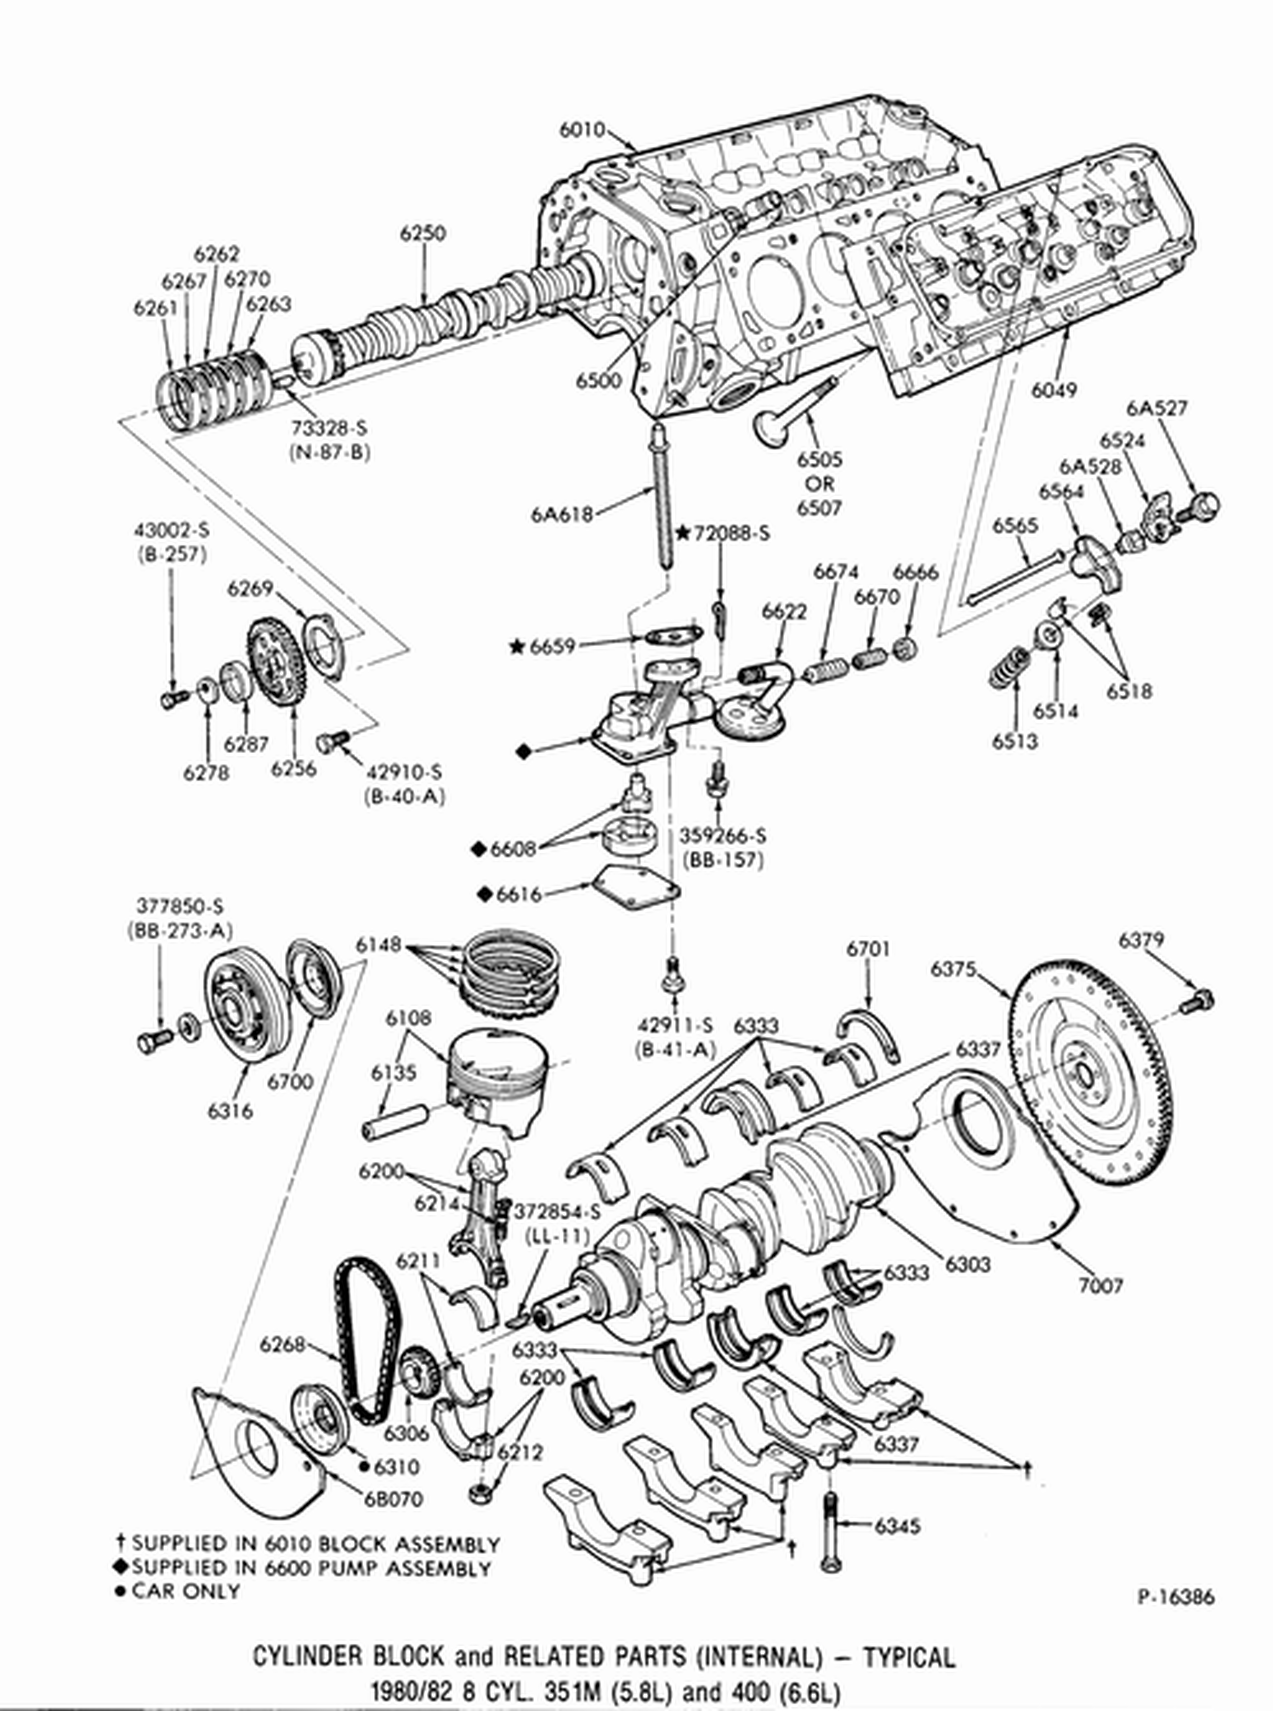 Ford 302 Engine Diagram on ford thunderbird vacuum hose diagram